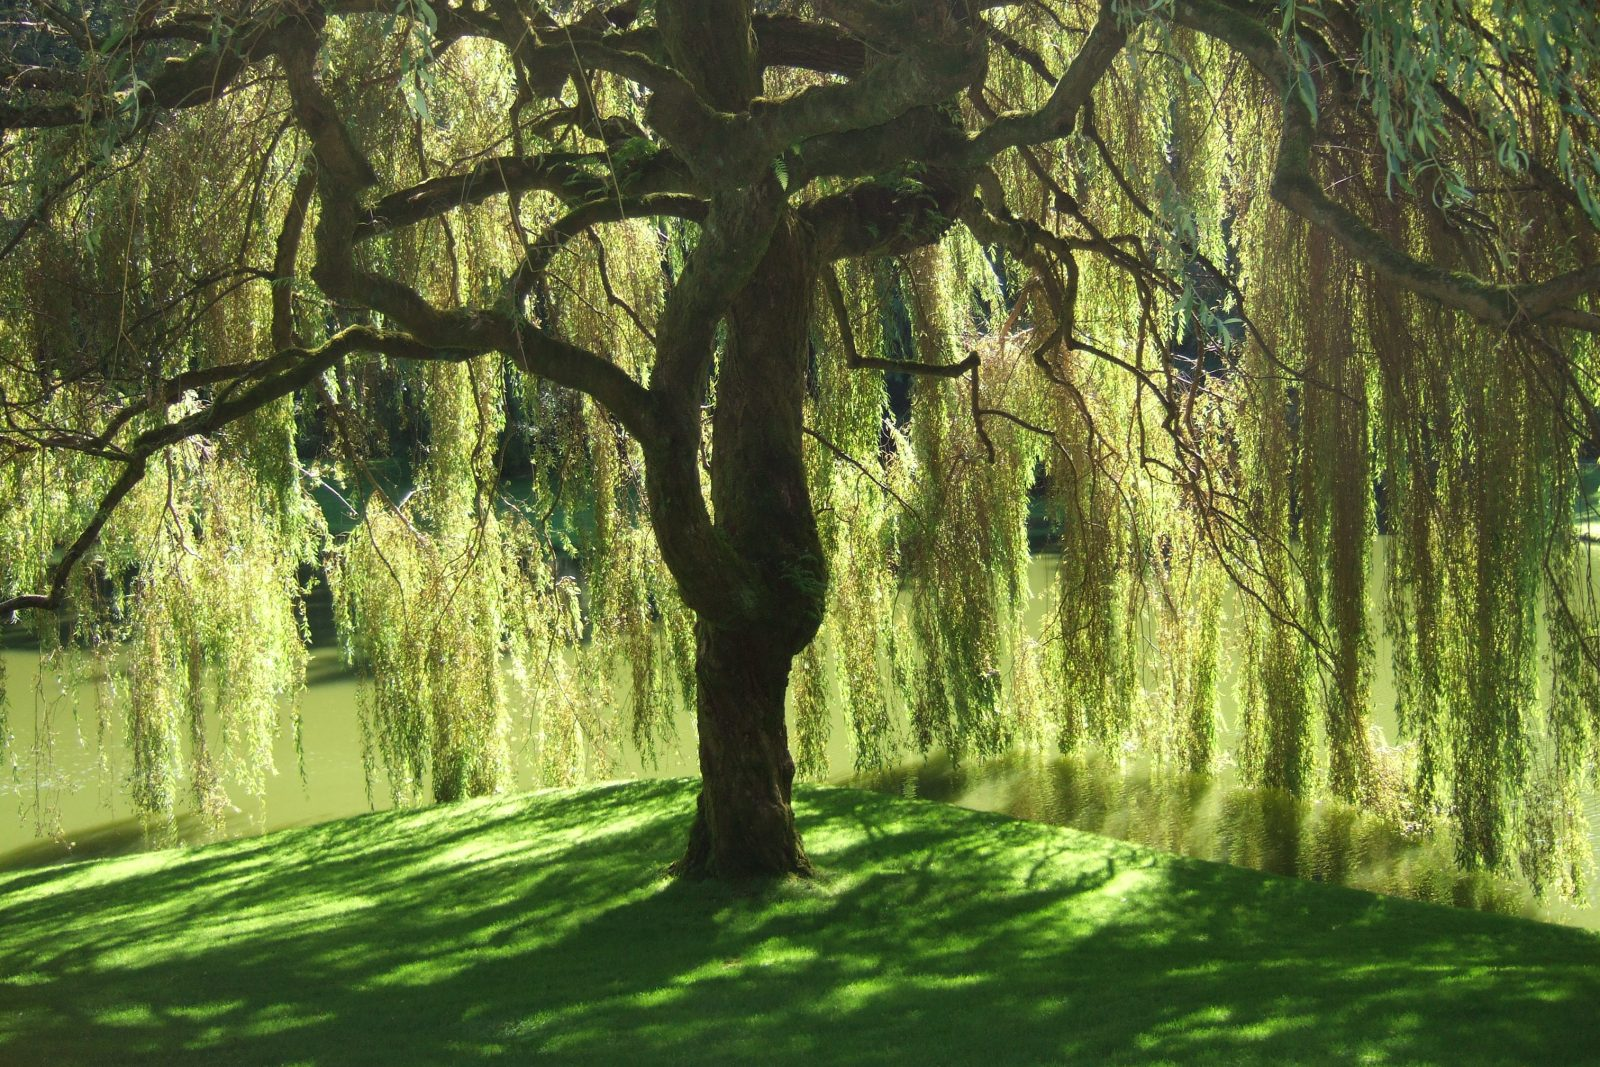 The Symbolism of the Willow Tree